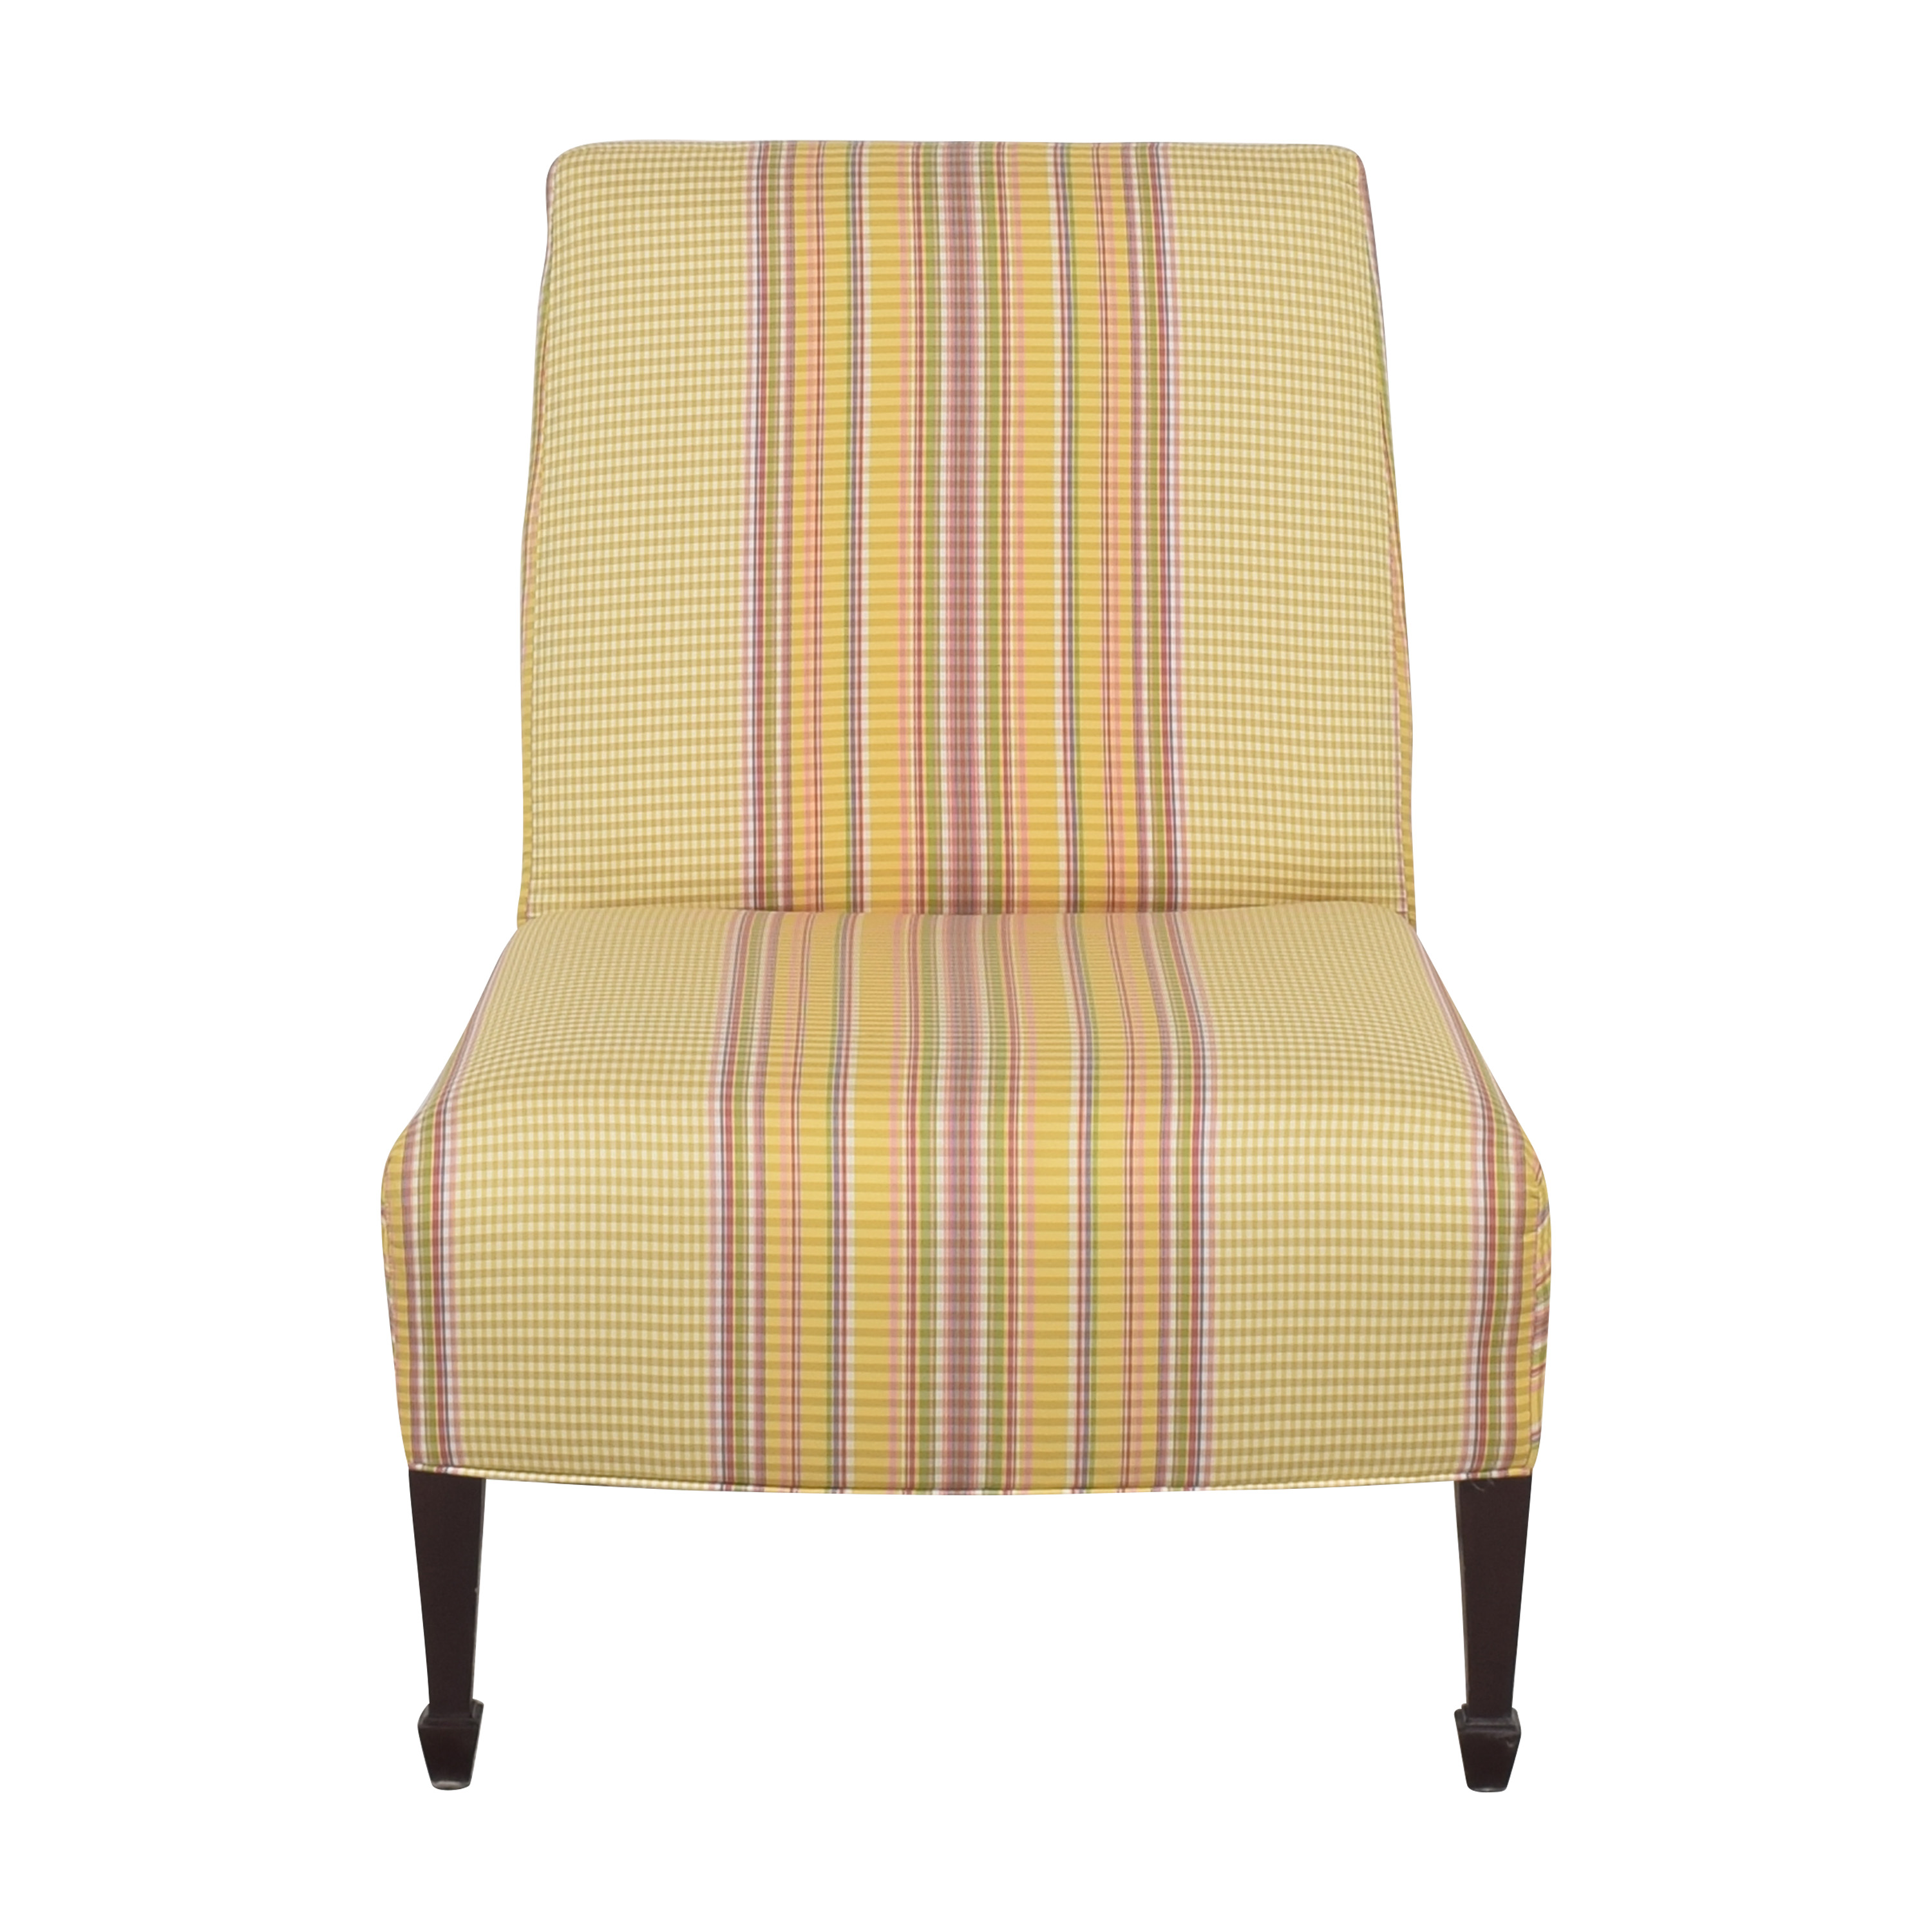 Ferrell Mittman Ferrell Mittman Upholstered Slipper Chair price